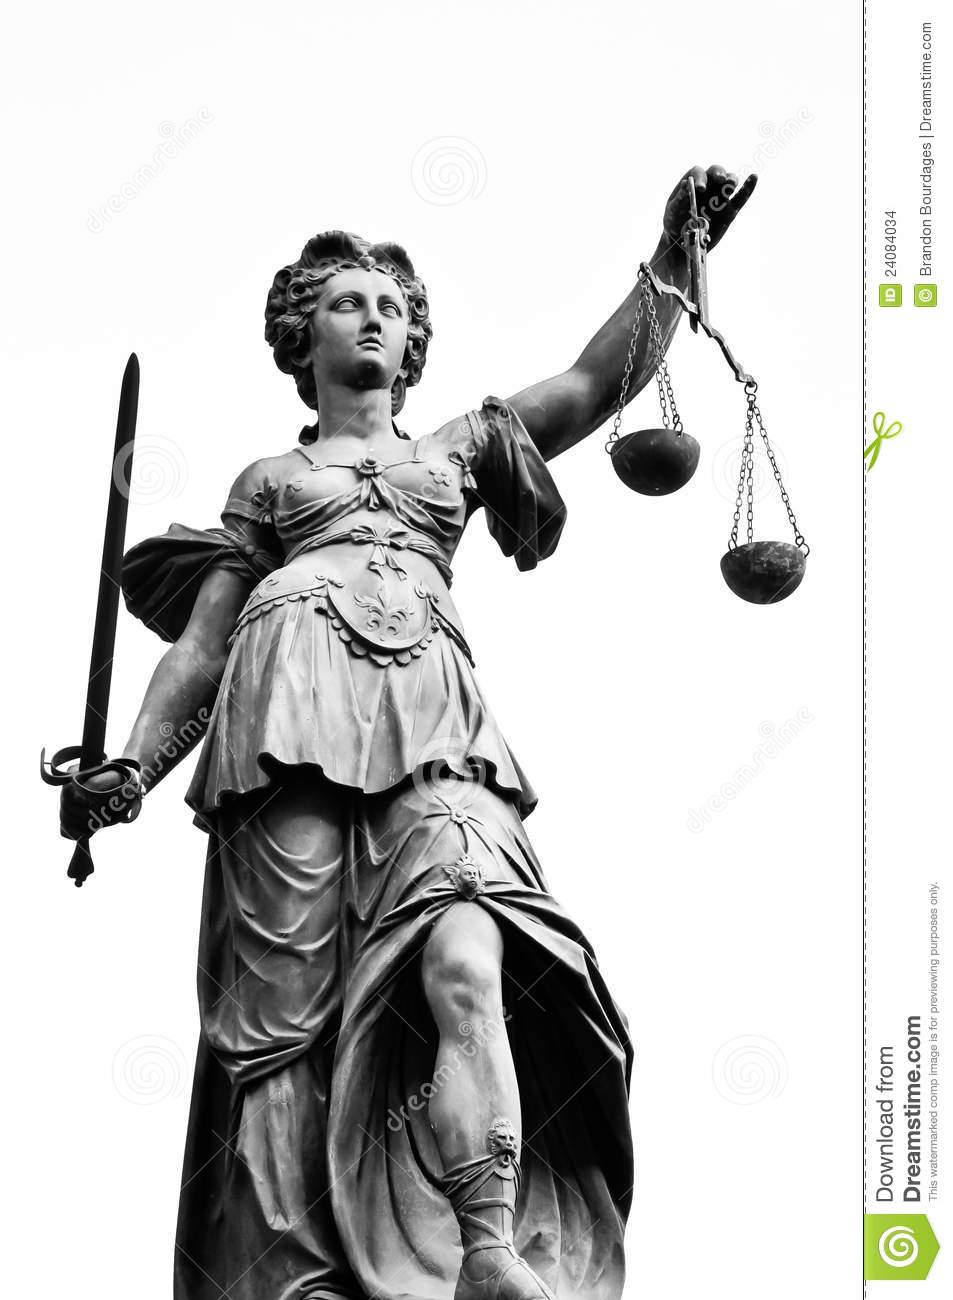 Blind Lady Justice Images Lady of Justice